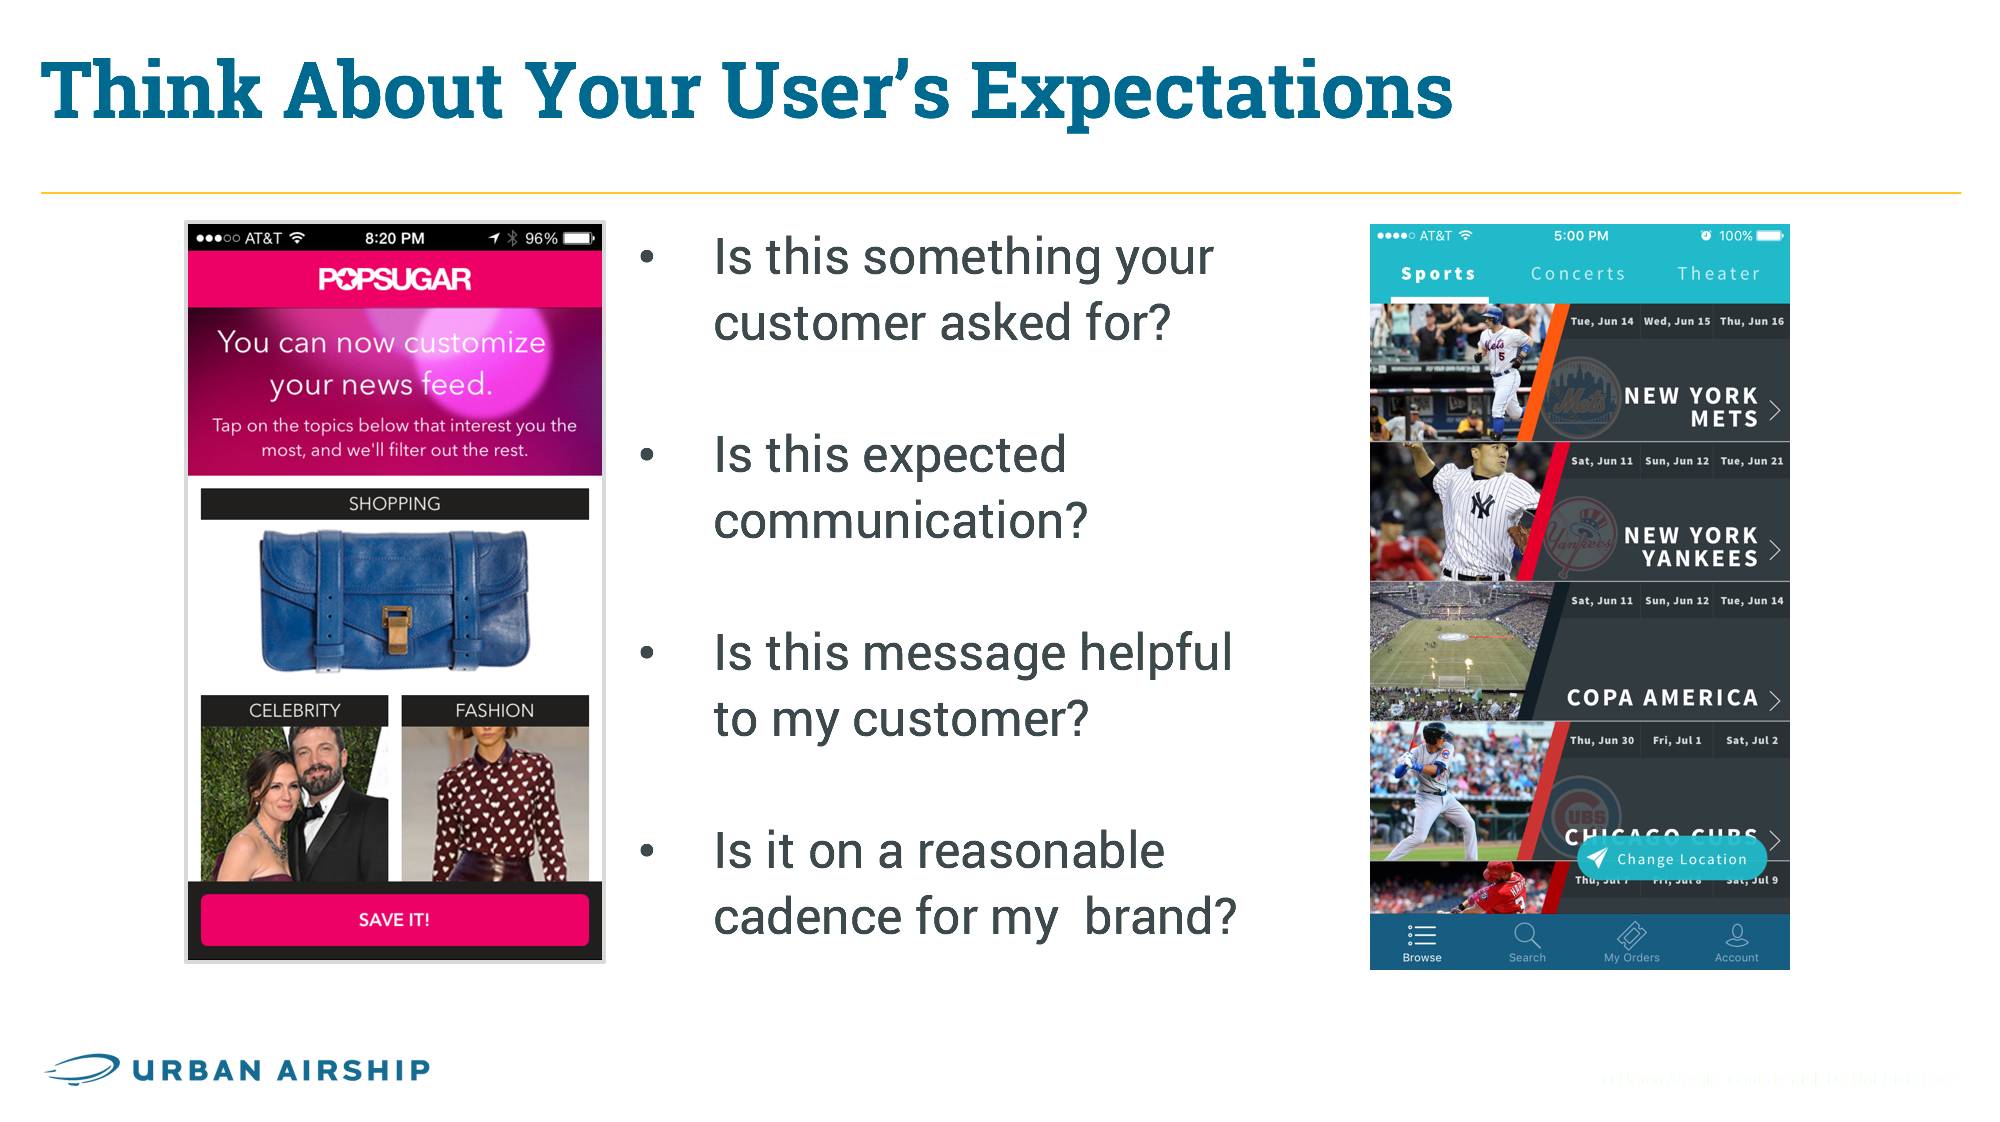 think-about-your-app-users-expectations-mobile-notifications-best-practices-urban-airship